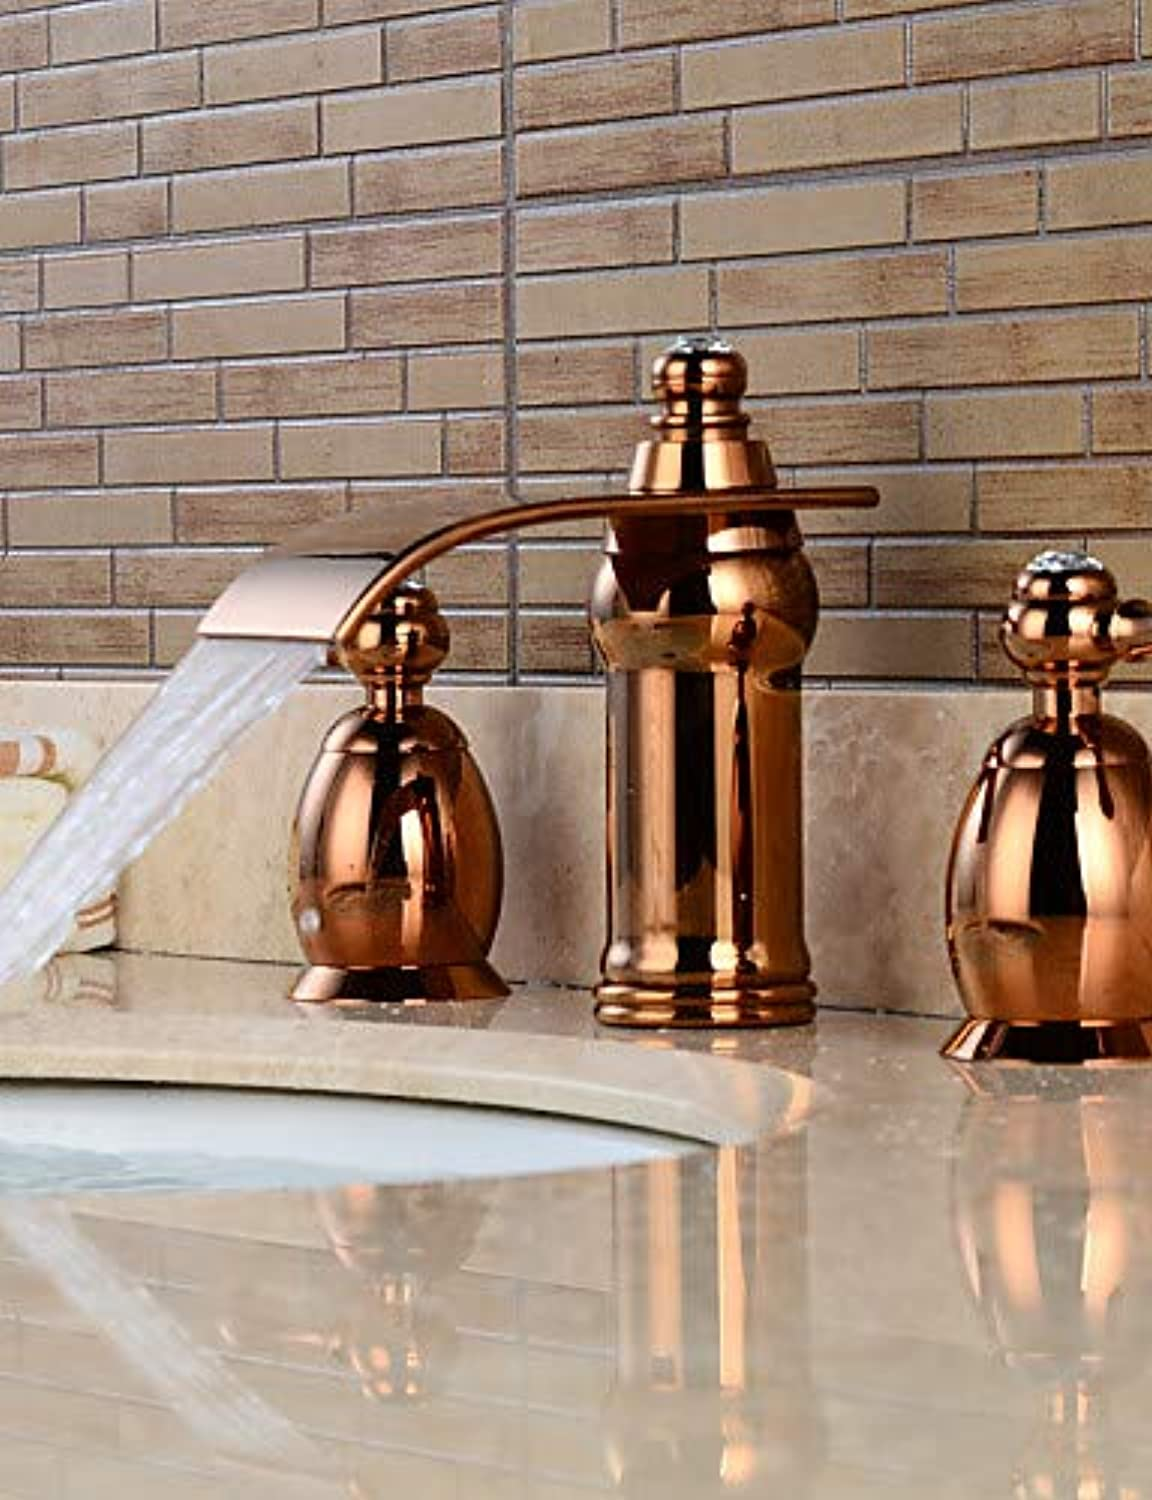 Mainstream home LPZSQ Tap Widespread Two Handles Three Holes in pink gold Bathroom Sink Faucet, gold  1119